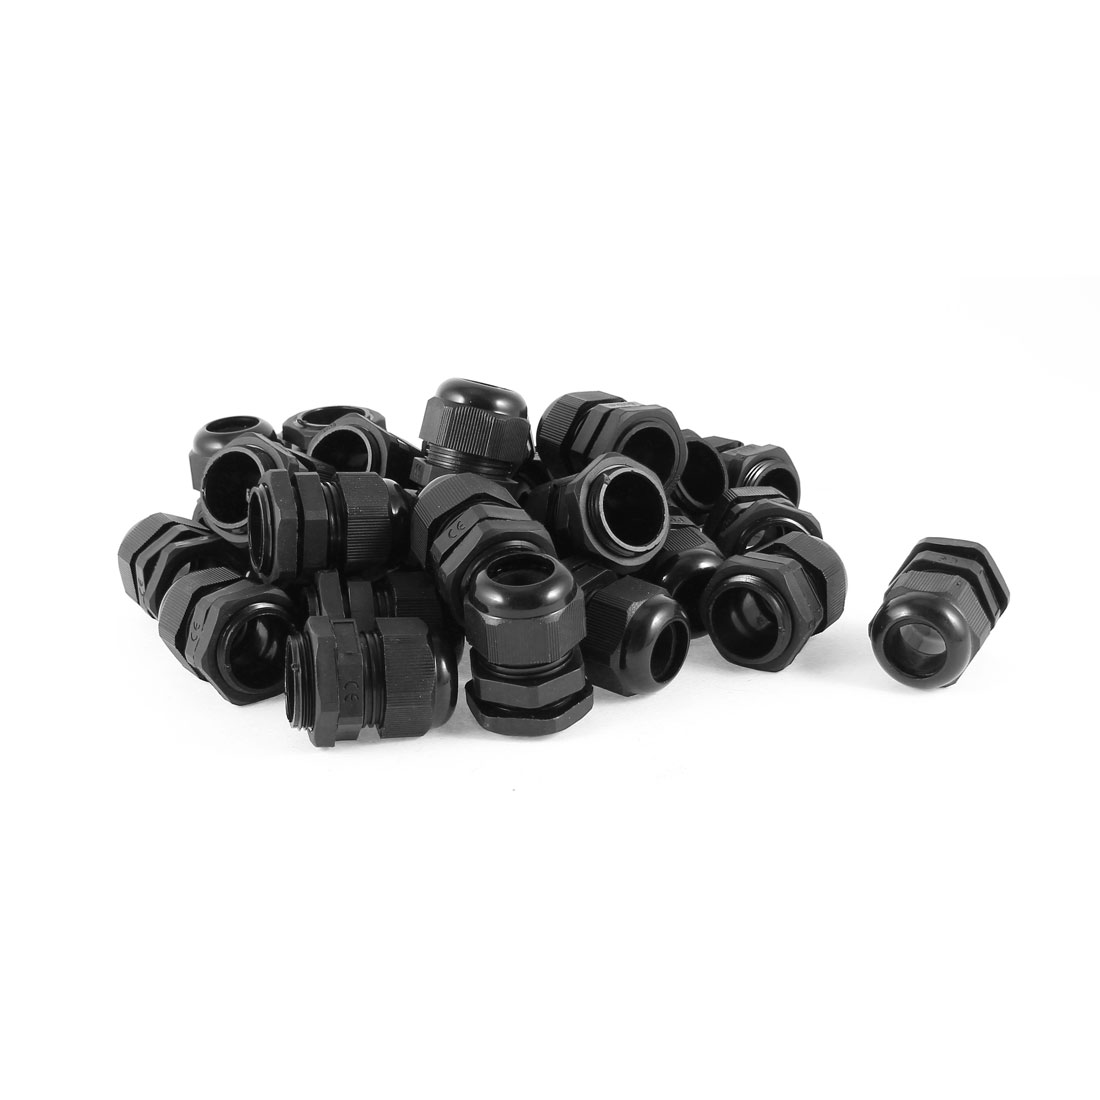 30 Pcs 12-15mm Cables Waterproof PG19 Black Plastic Glands Connectors